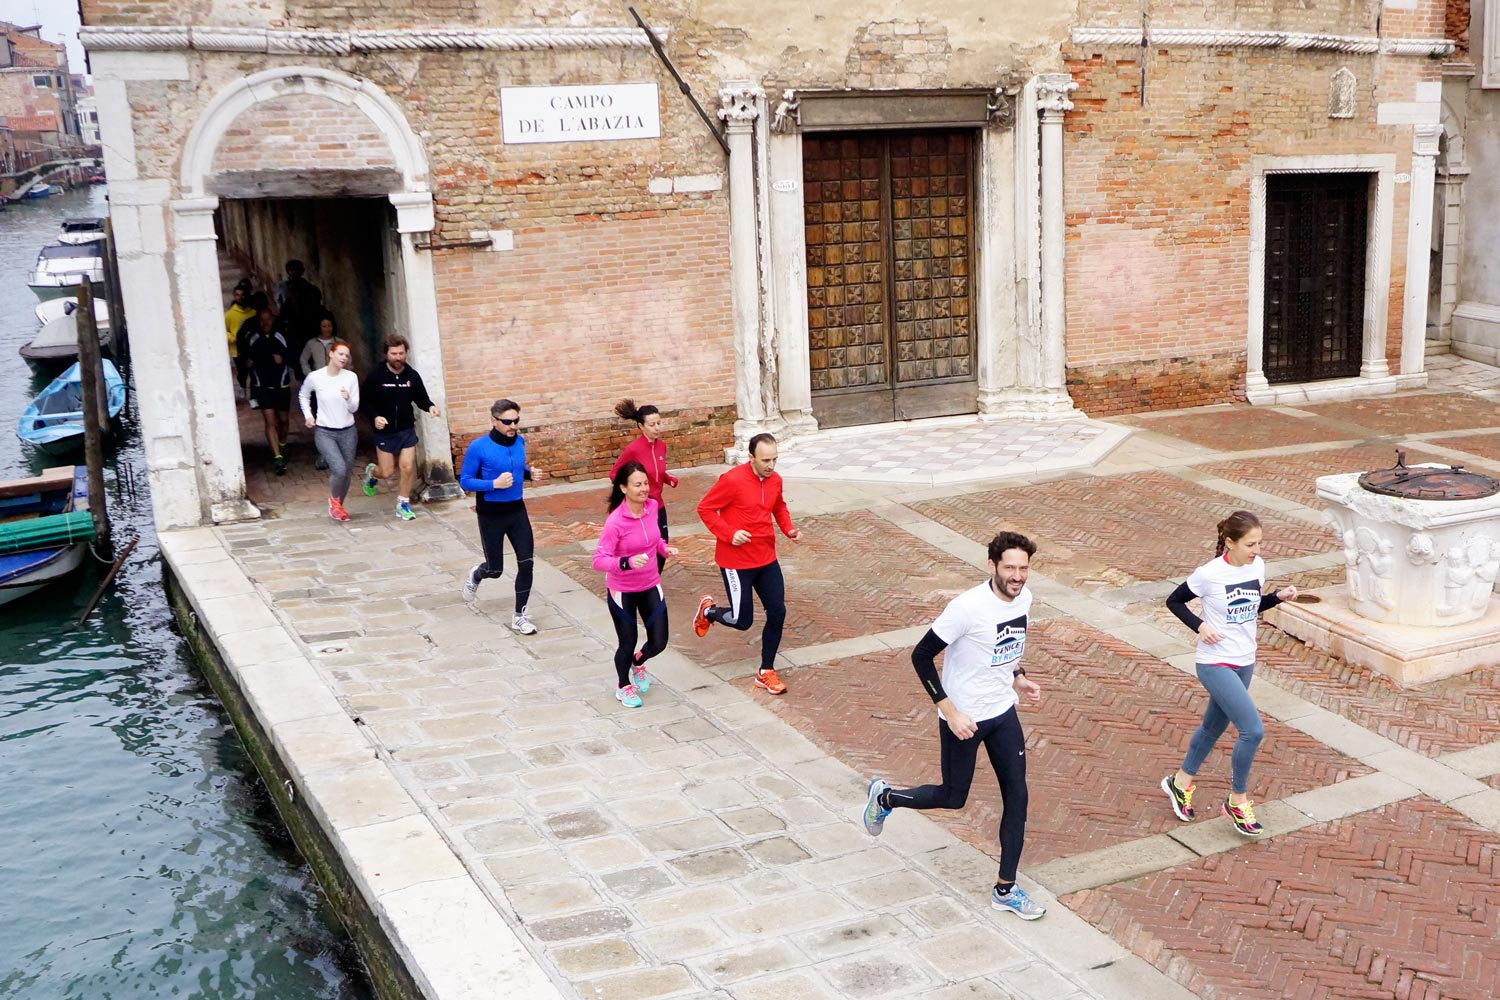 Runners in a campo of Venice